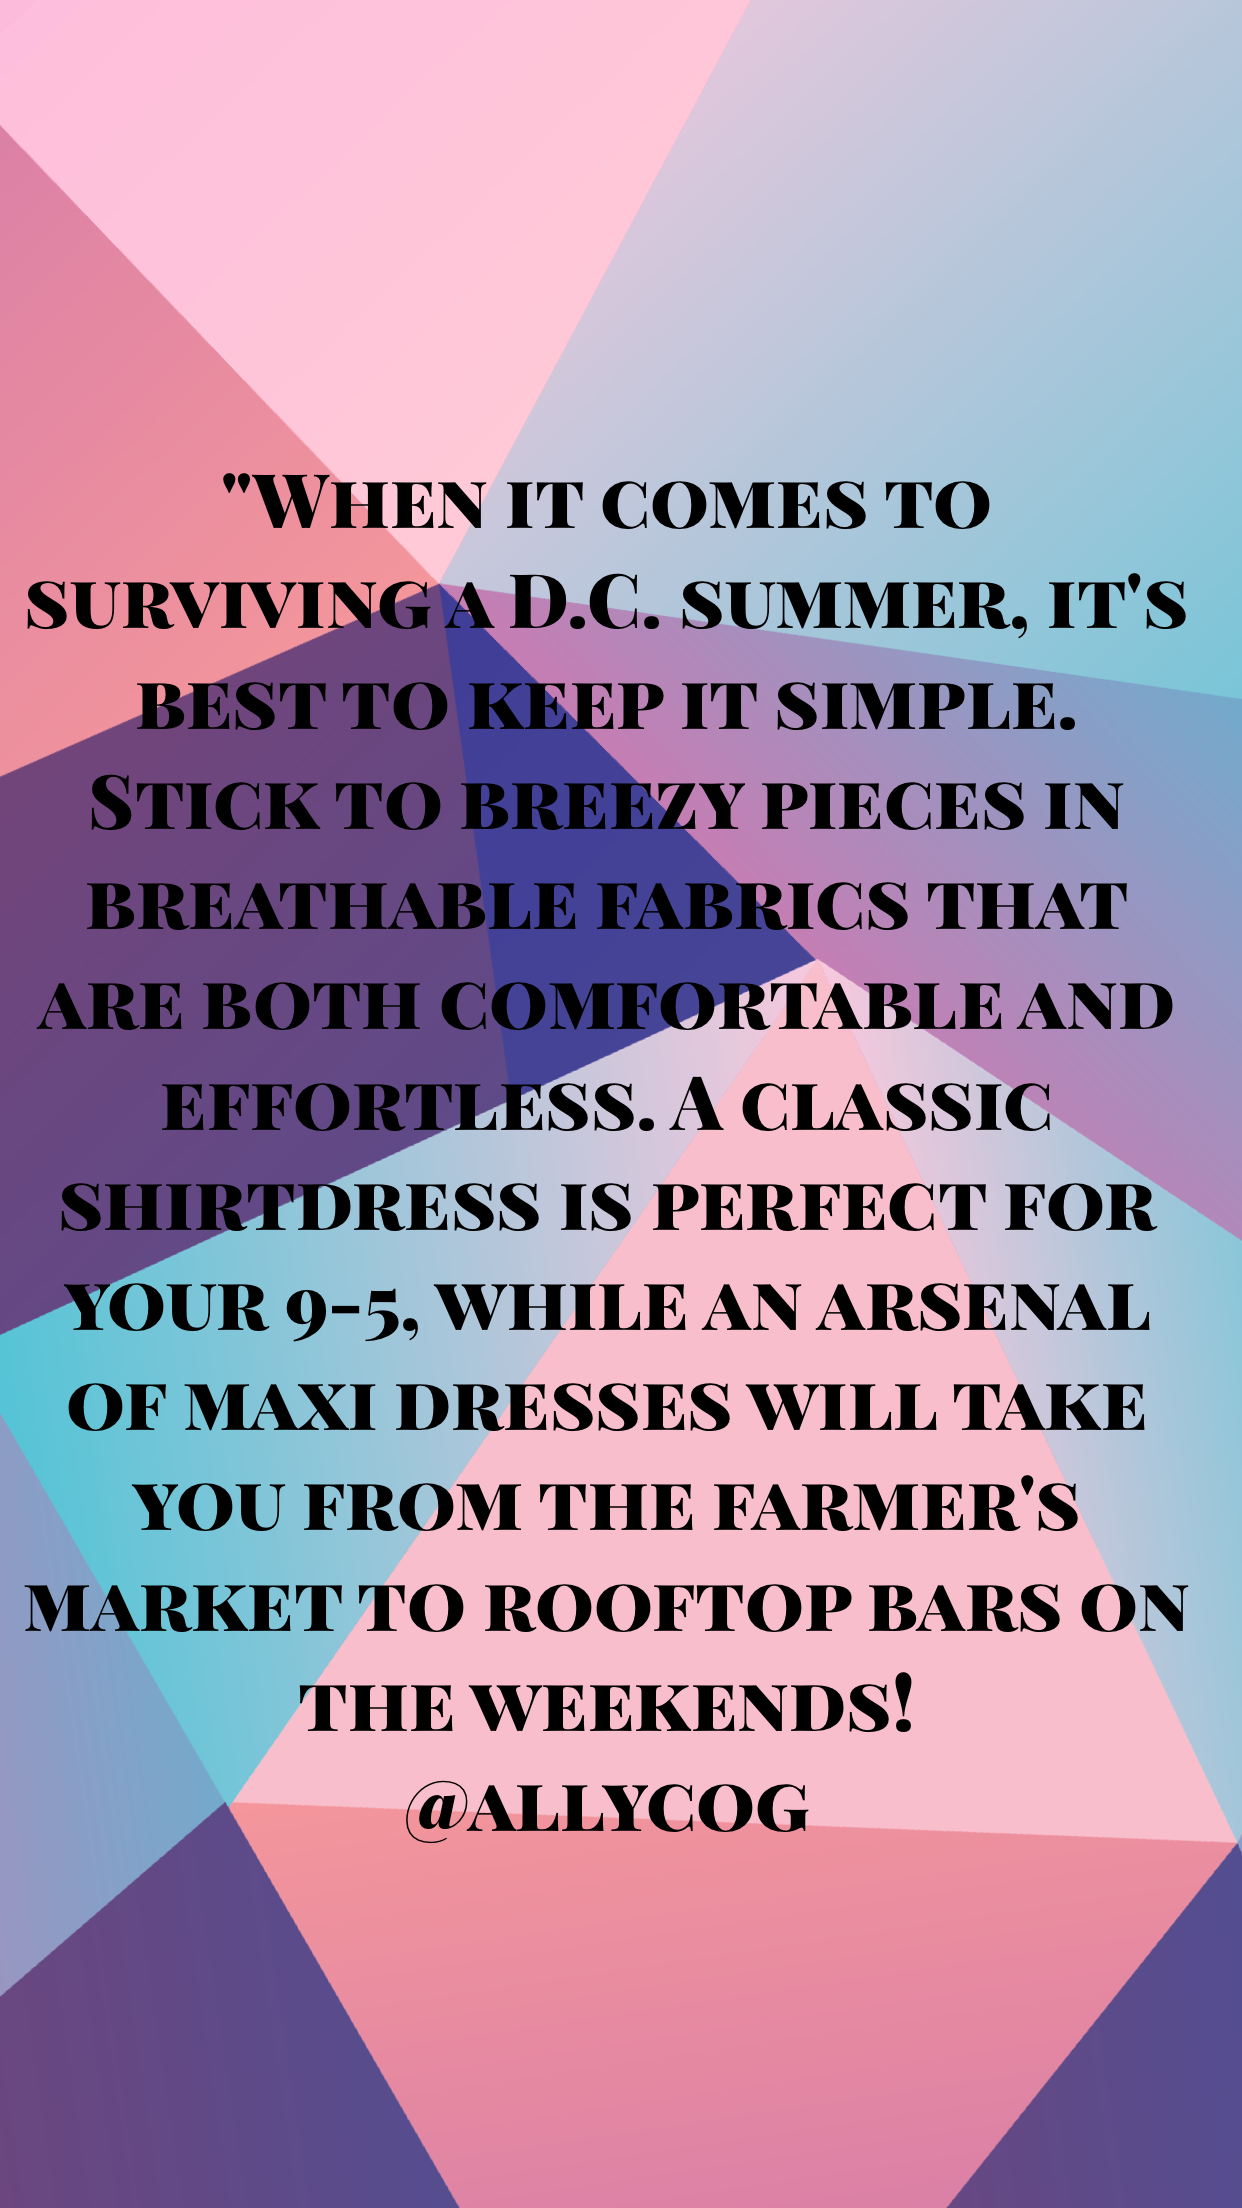 """When it comes to surviving a D.C. summer, it's best to keep it simple. Stick to breezy pieces in breathable fabrics that are both comfortable and effortless. A classic shirt dress is perfect for your 9-5 while an arsenal of maxi dresses will take you from the farmer's market to rooftop bars on the weekends."""